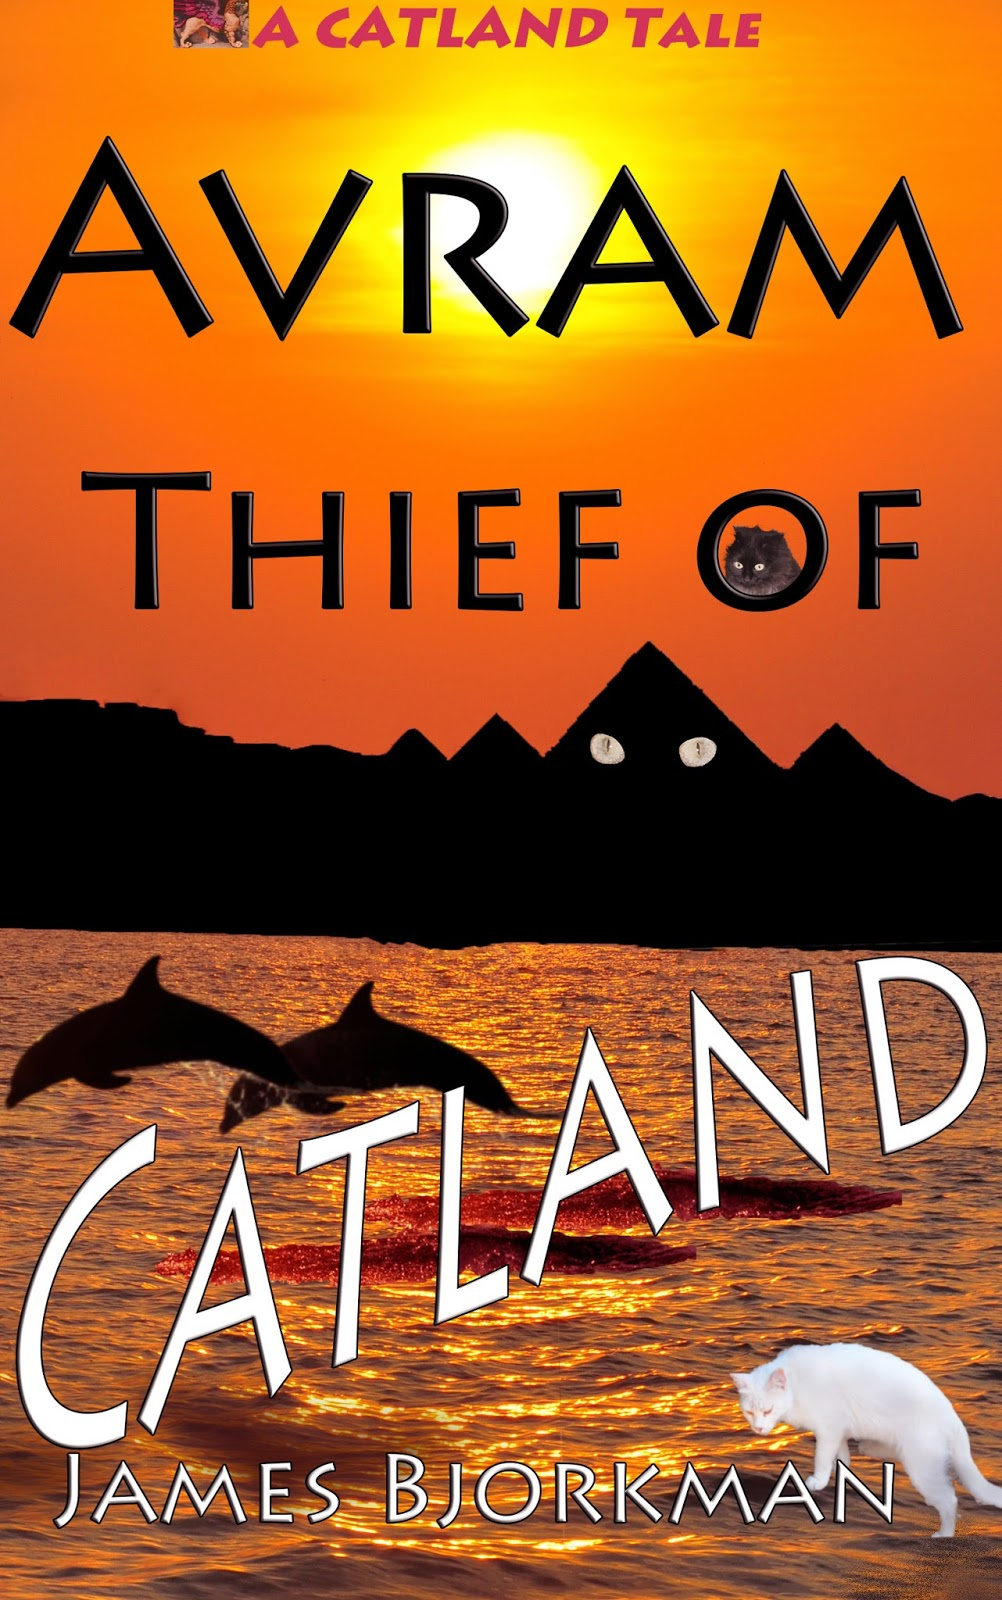 Avram Thief of Catland atlantis.filminspector.com